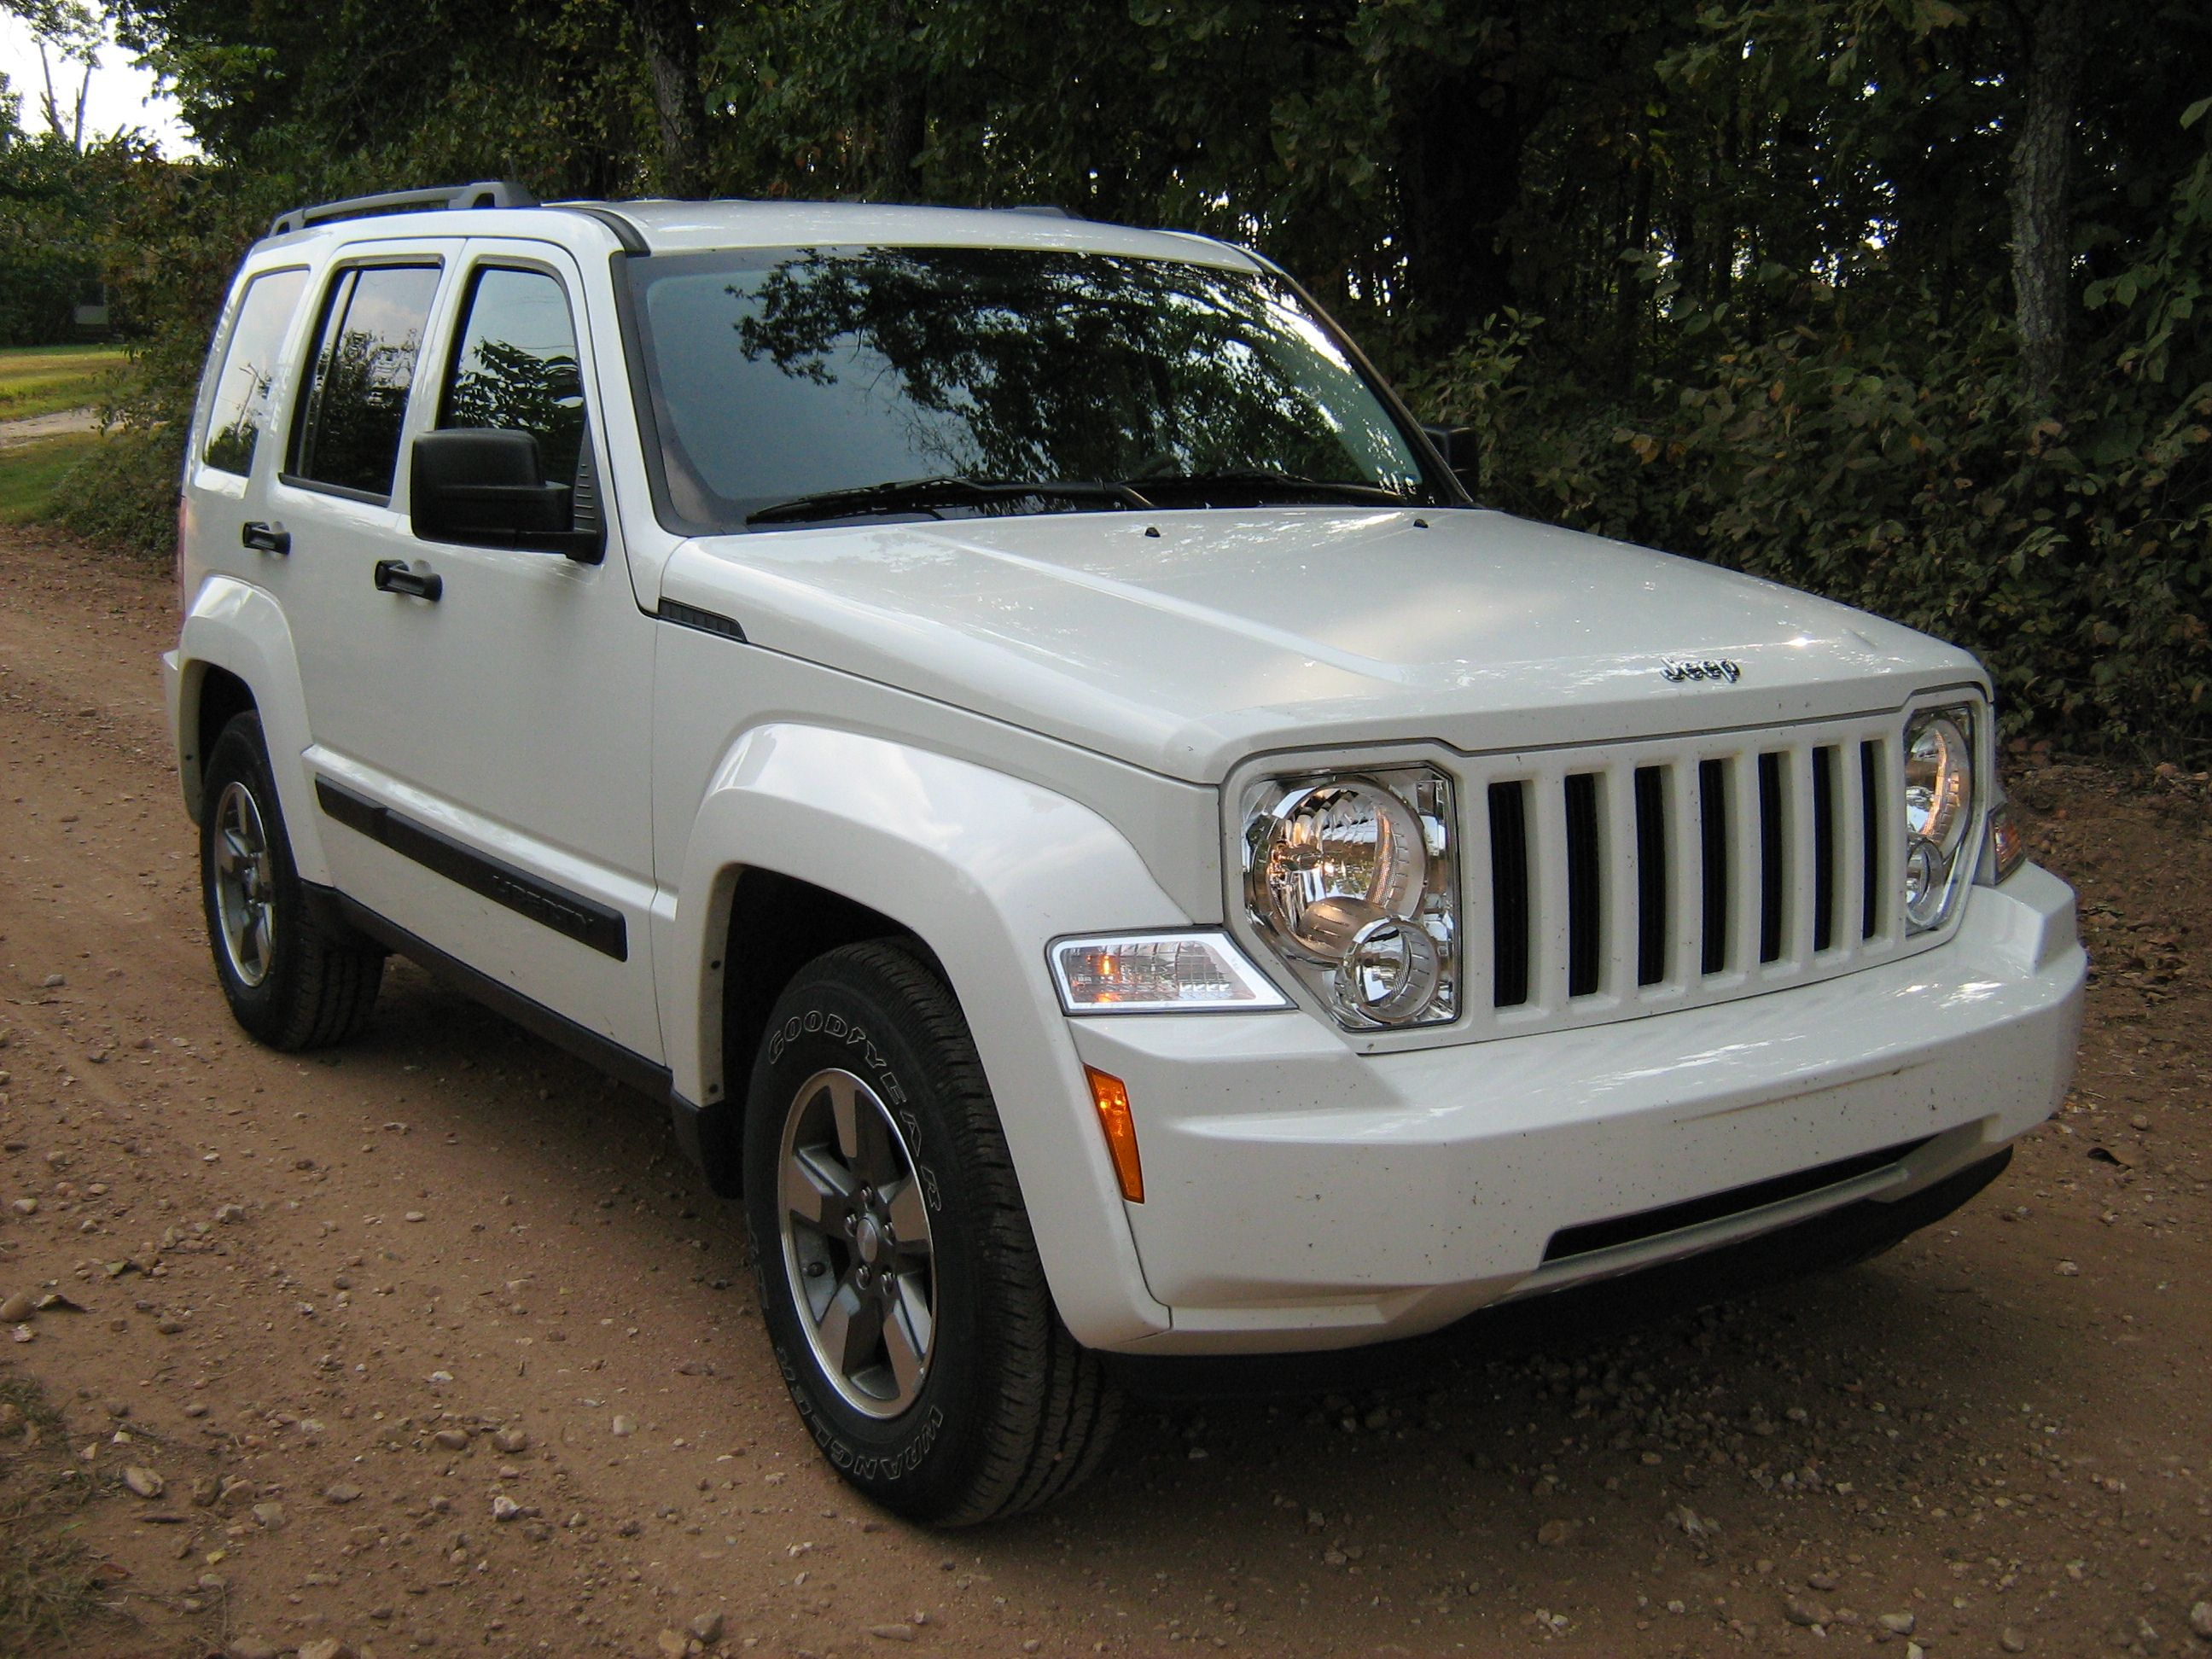 My CAR! White Jeep Liberty. I lOve it.